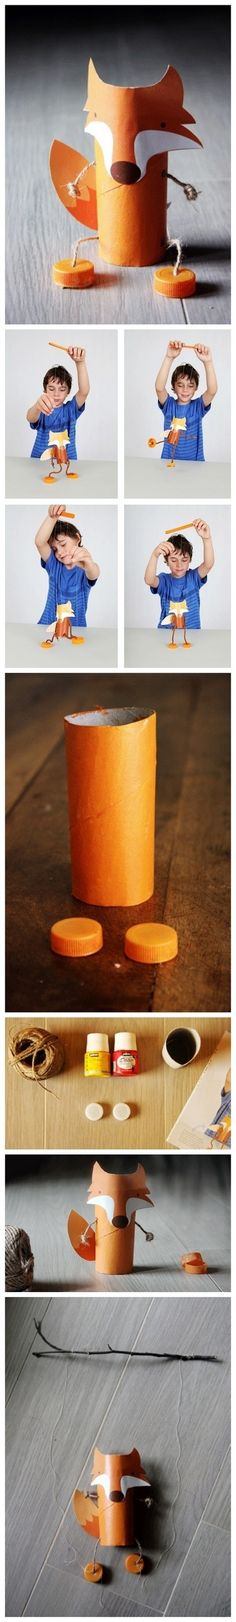 Toilet Paper Roll Crafts - Get creative! These toilet paper roll crafts are a great way to reuse these often forgotten paper products. You can use toilet paper rolls for anything! creative DIY toilet paper roll crafts are fun and easy to make. Projects For Kids, Diy For Kids, Craft Projects, Crafts For Kids, Craft Ideas, Summer Crafts, Toilet Paper Roll Crafts, Paper Crafts, Diy Paper